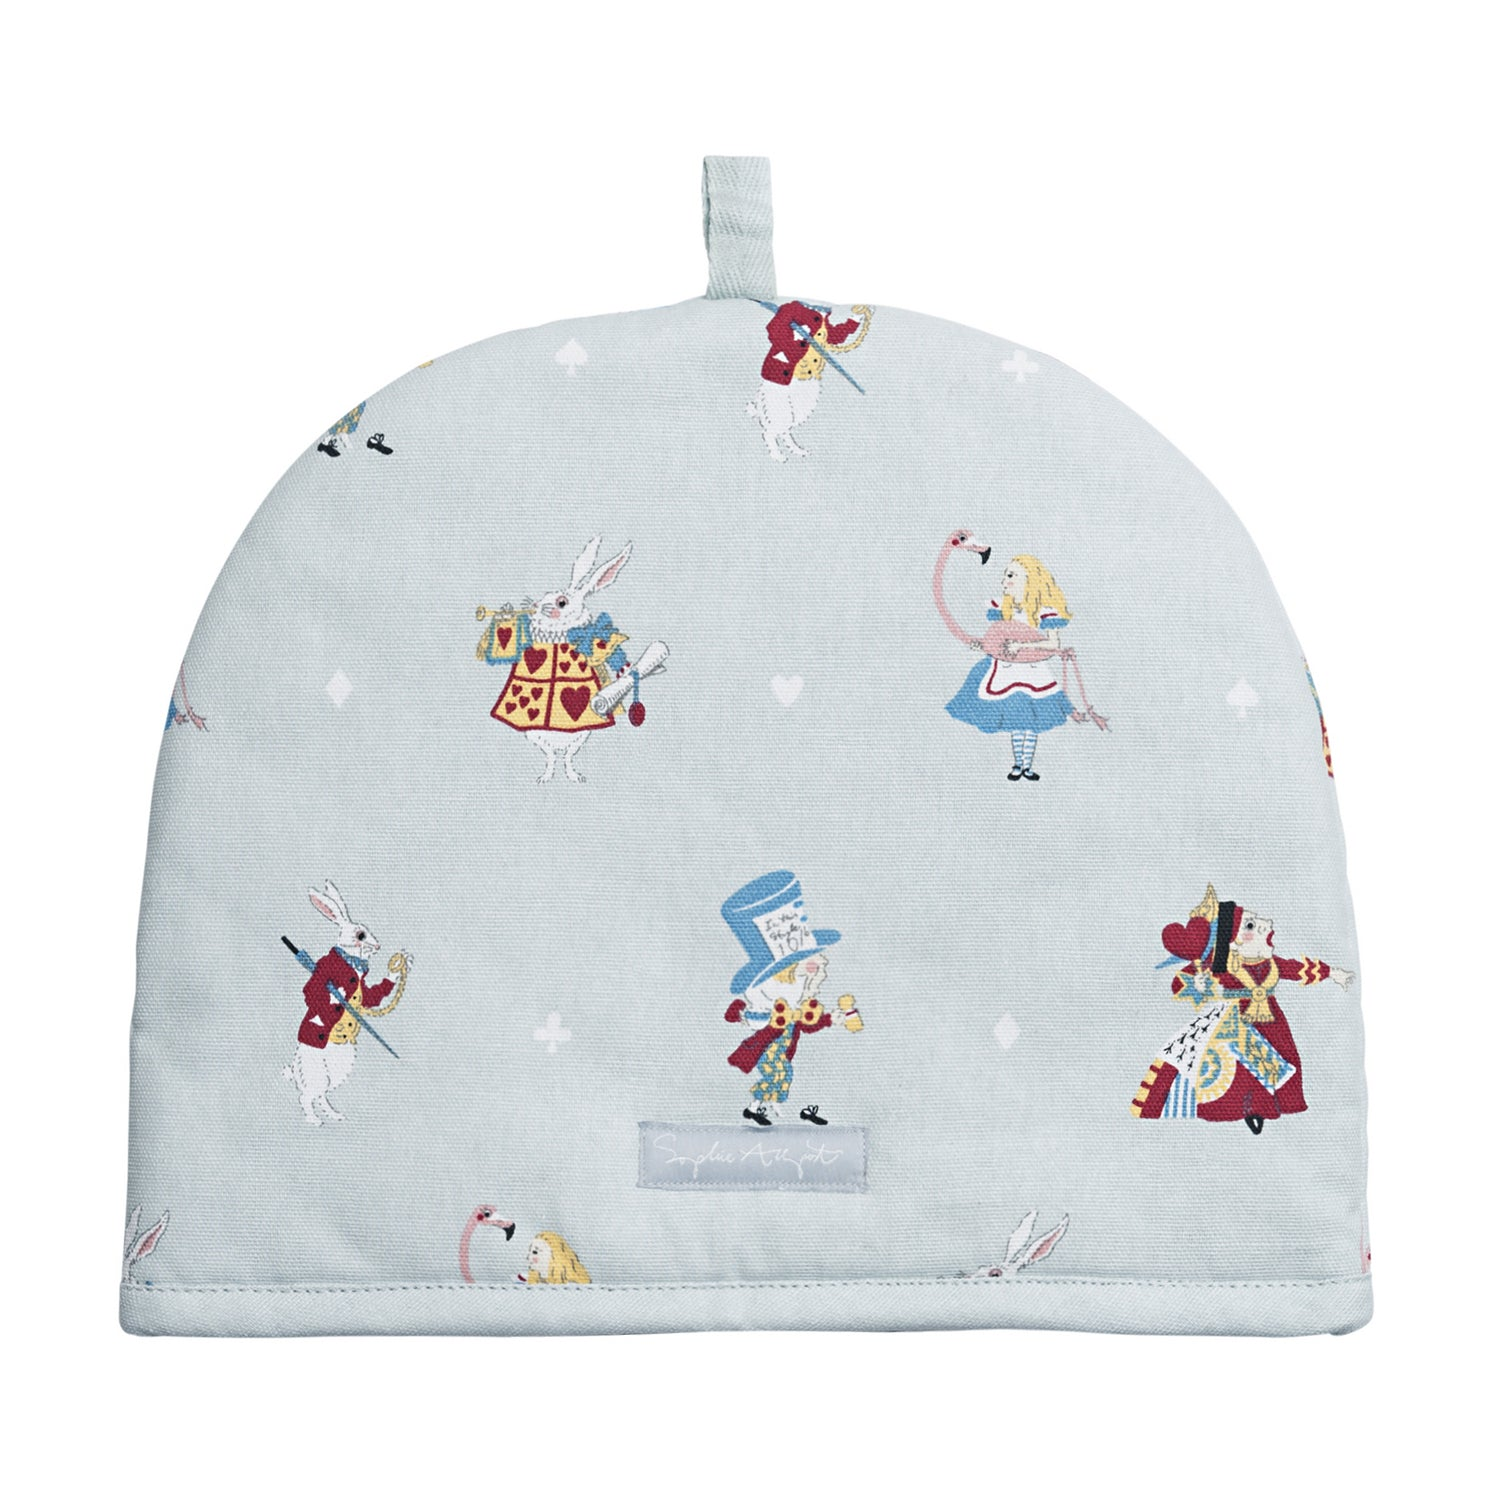 Alice in Wonderland Tea Cosy